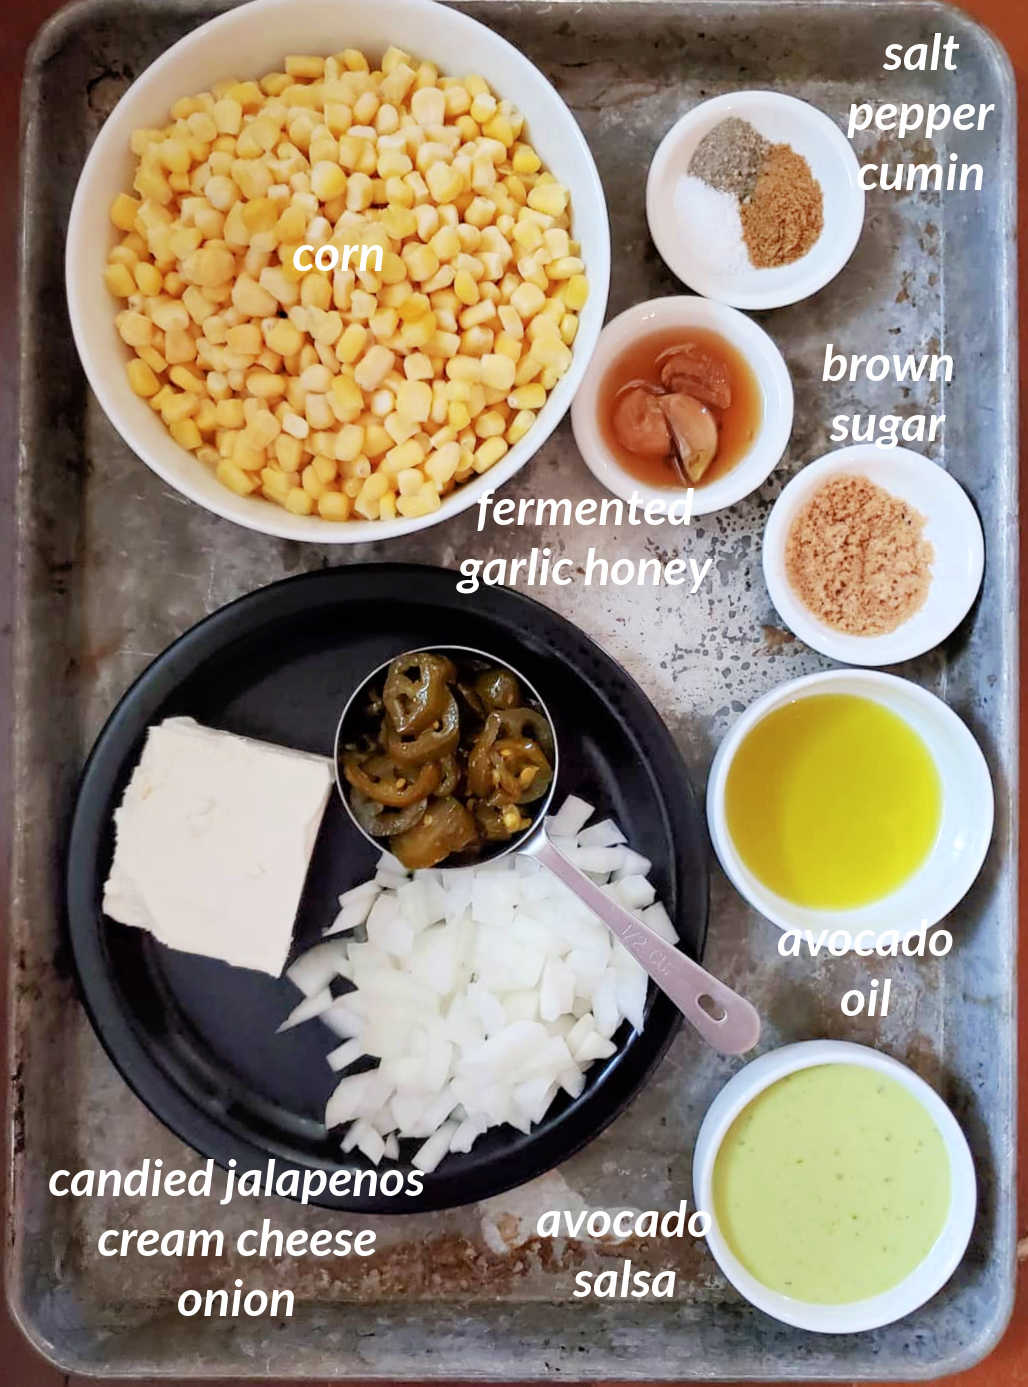 An overhead shot of all the ingredients needed to make deviled corn: corn, salt, pepper, cumin, fermented honey garlic, brown sugar, avocado oil, avocado salsa, cream cheese, candied jalapenos, and chopped onion.